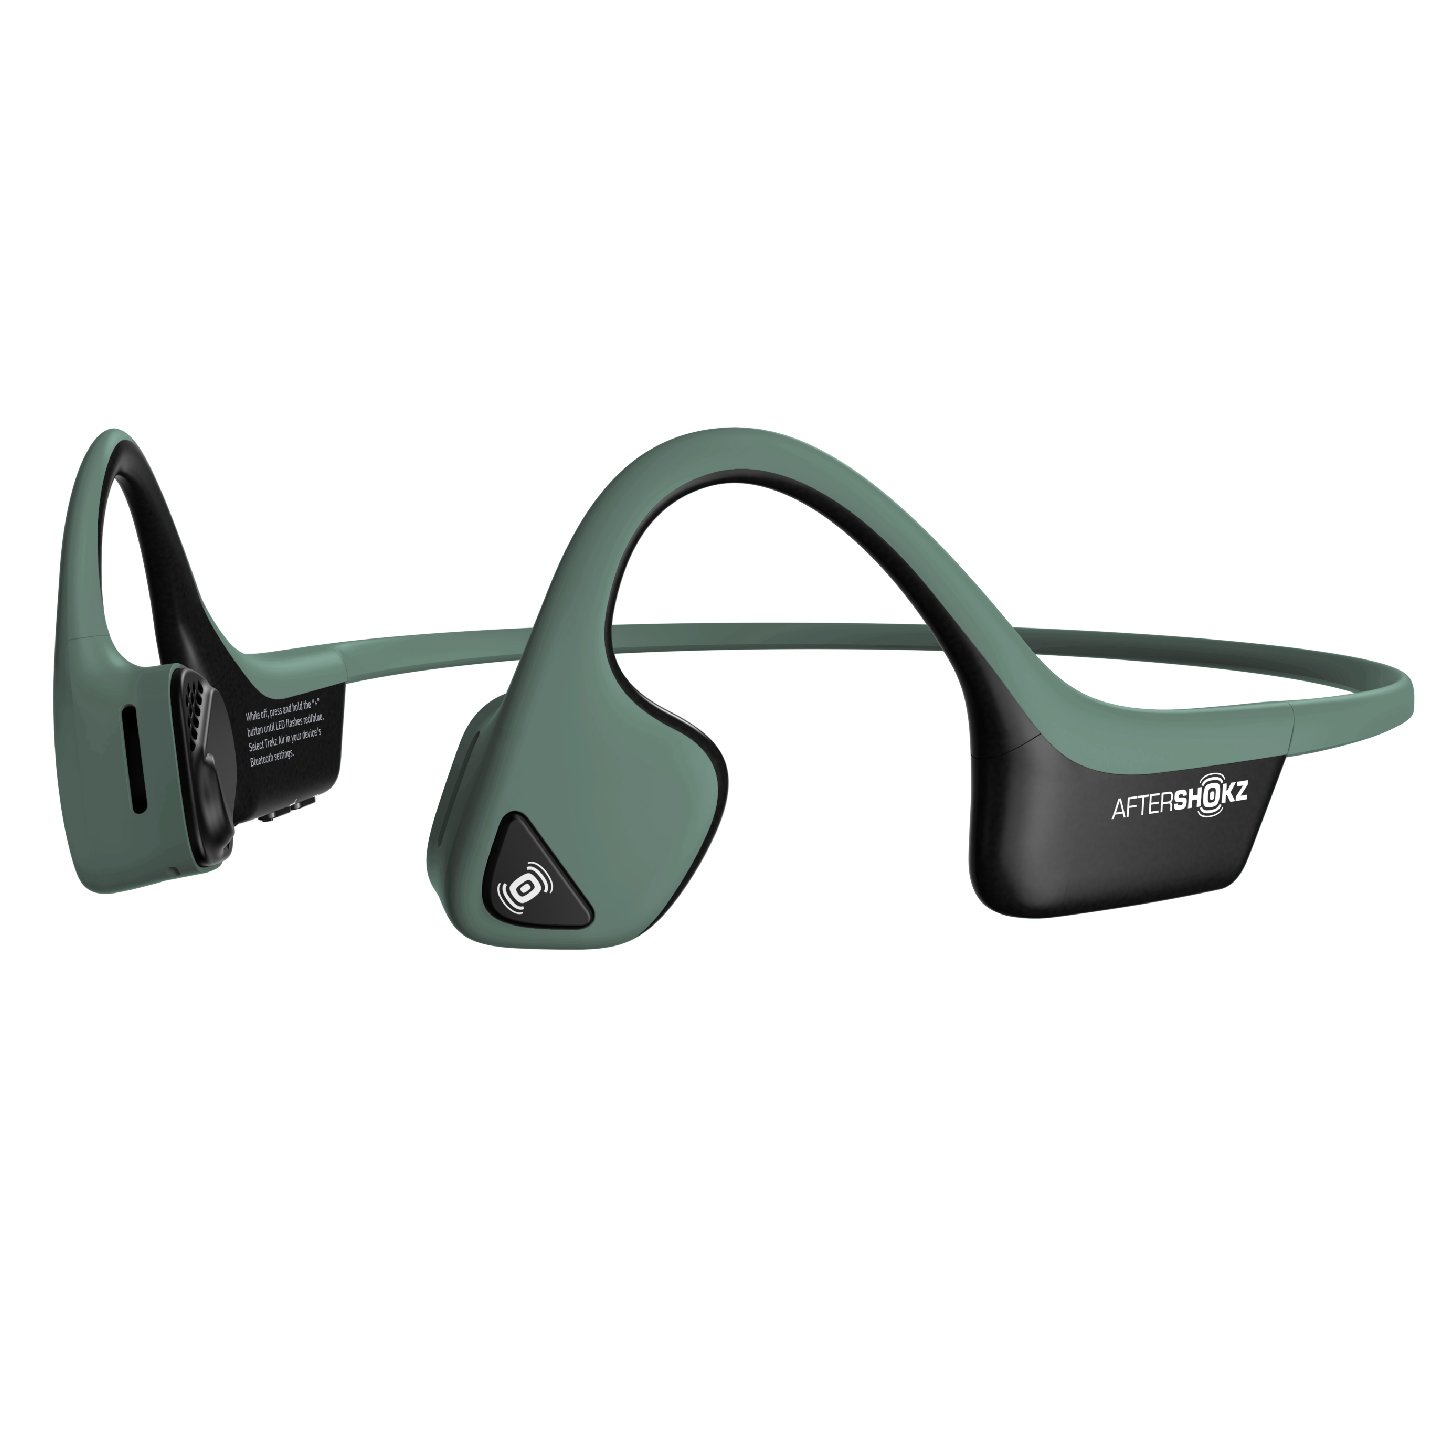 AfterShokz Air Open Ear Wireless Bone Conduction Headphones, Forest Green, AS650FG